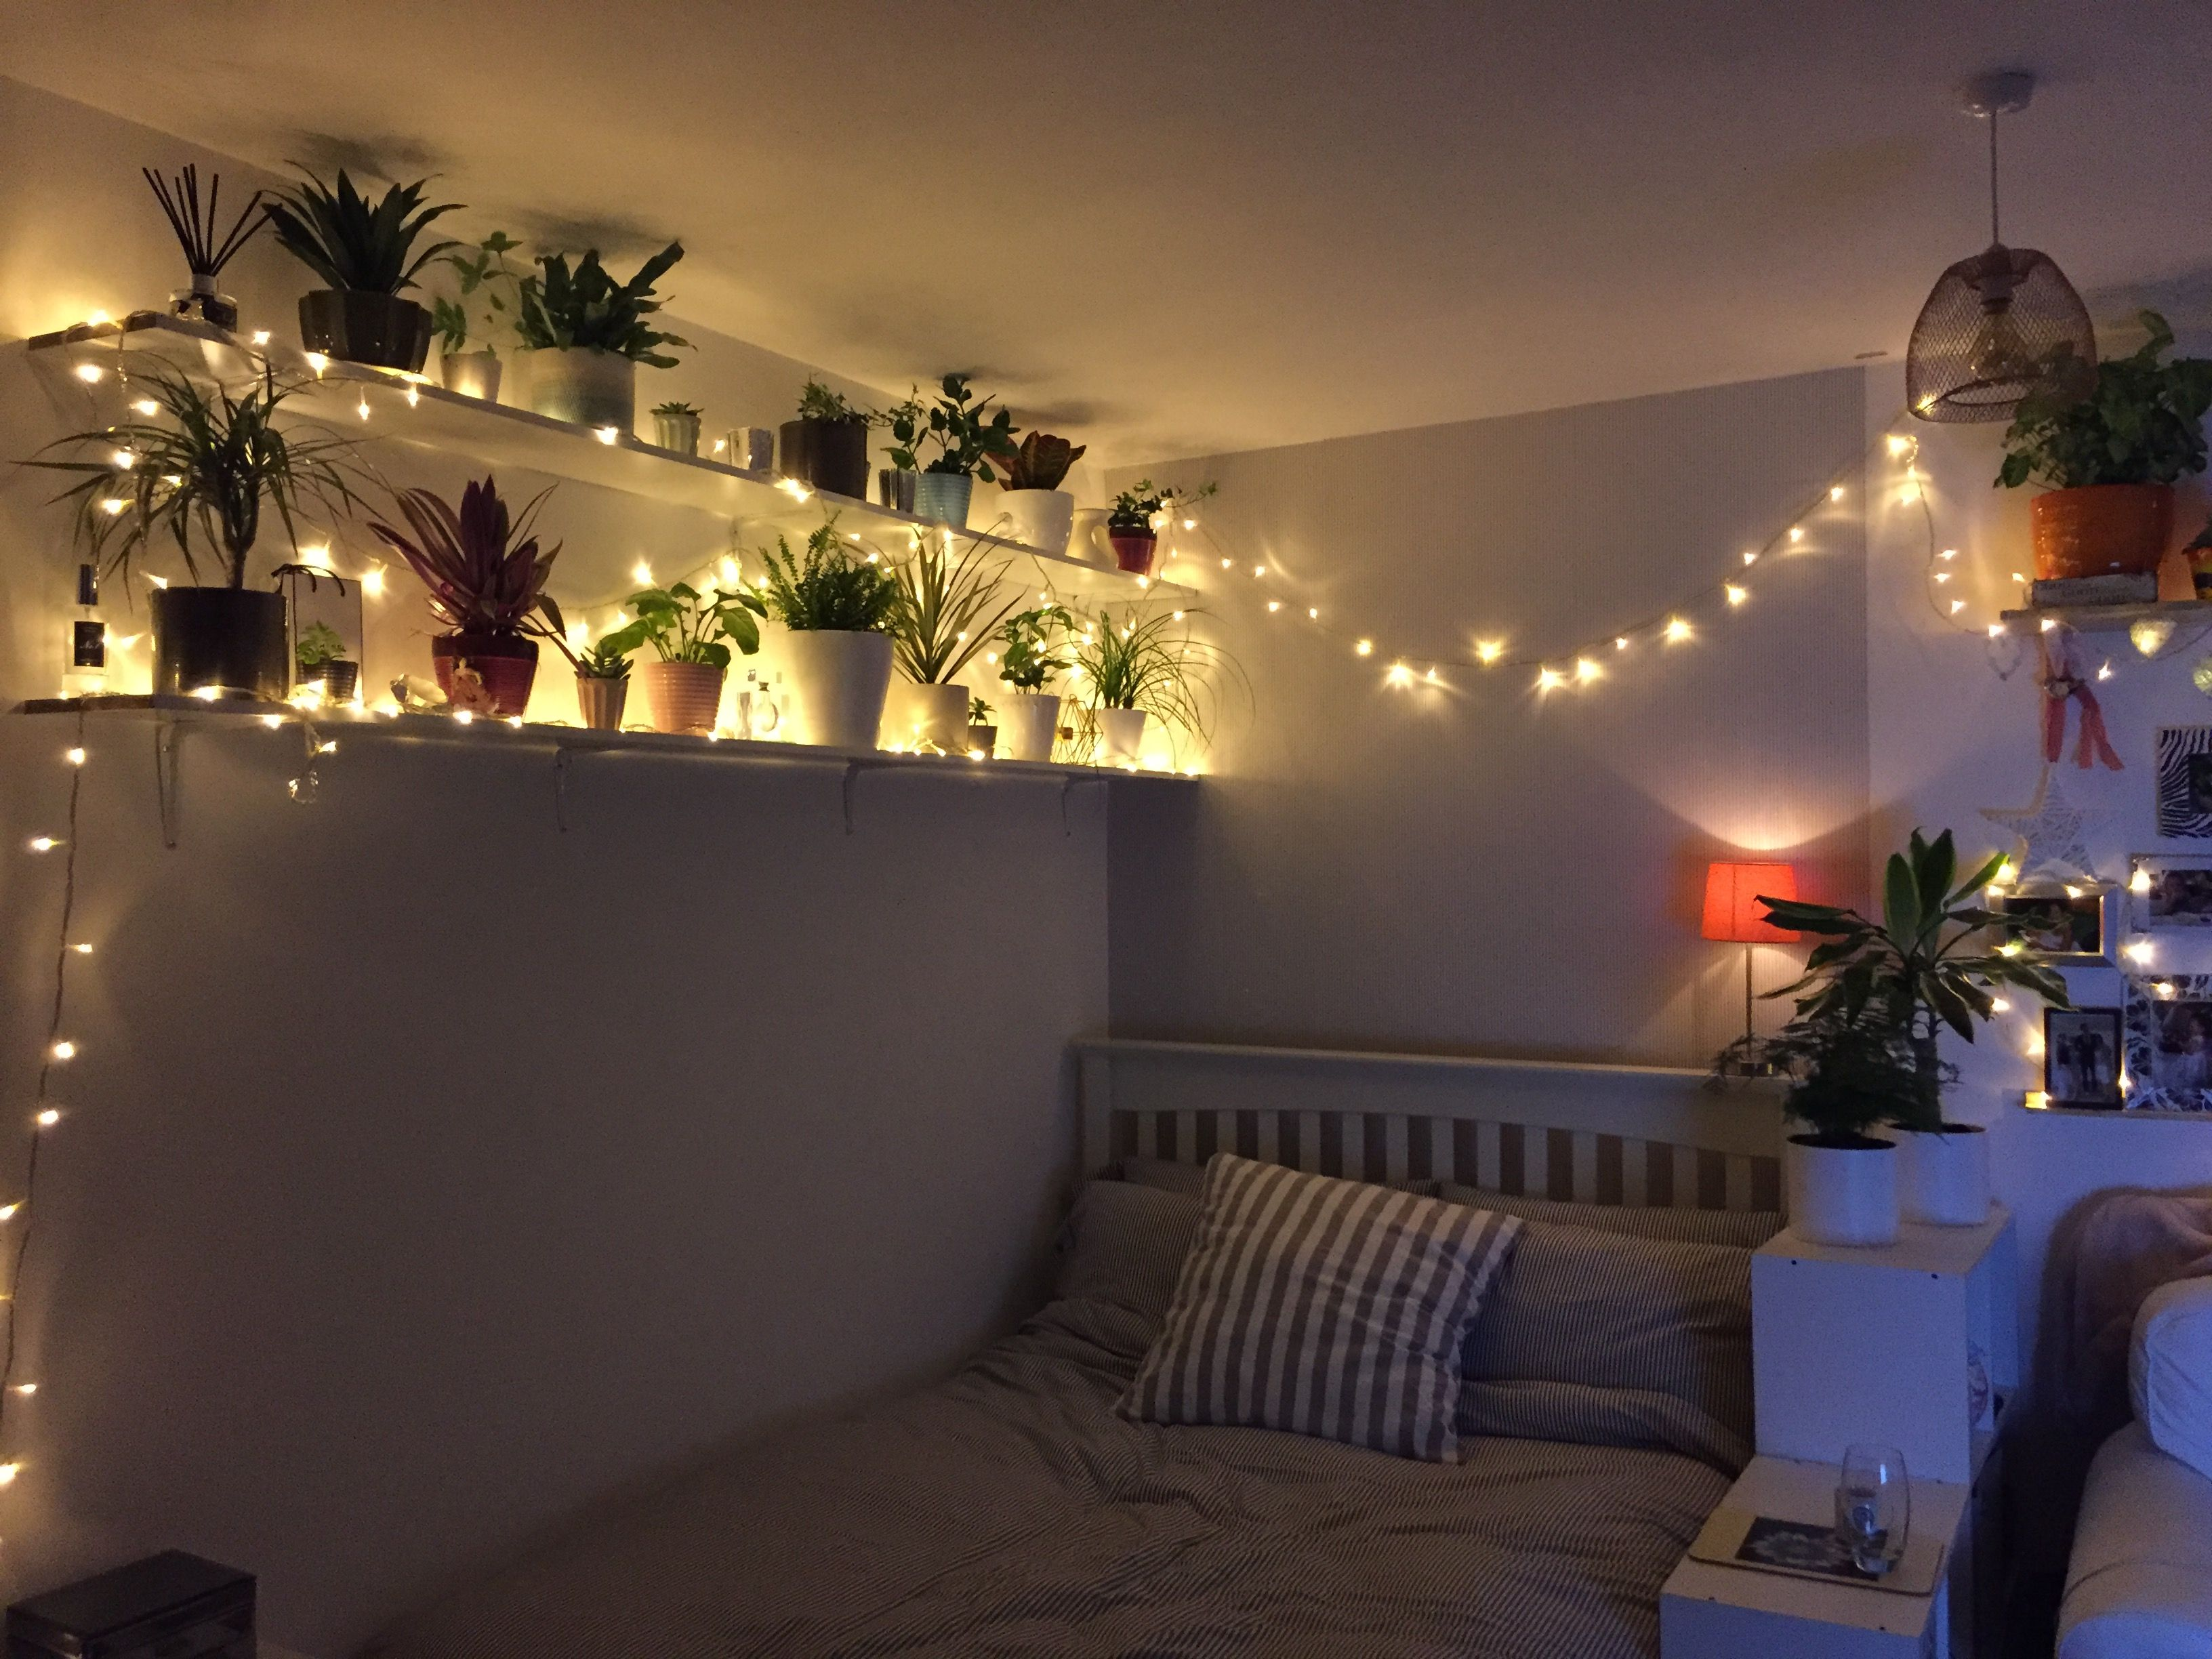 Fairy lights (With images) Aesthetic rooms, Music room